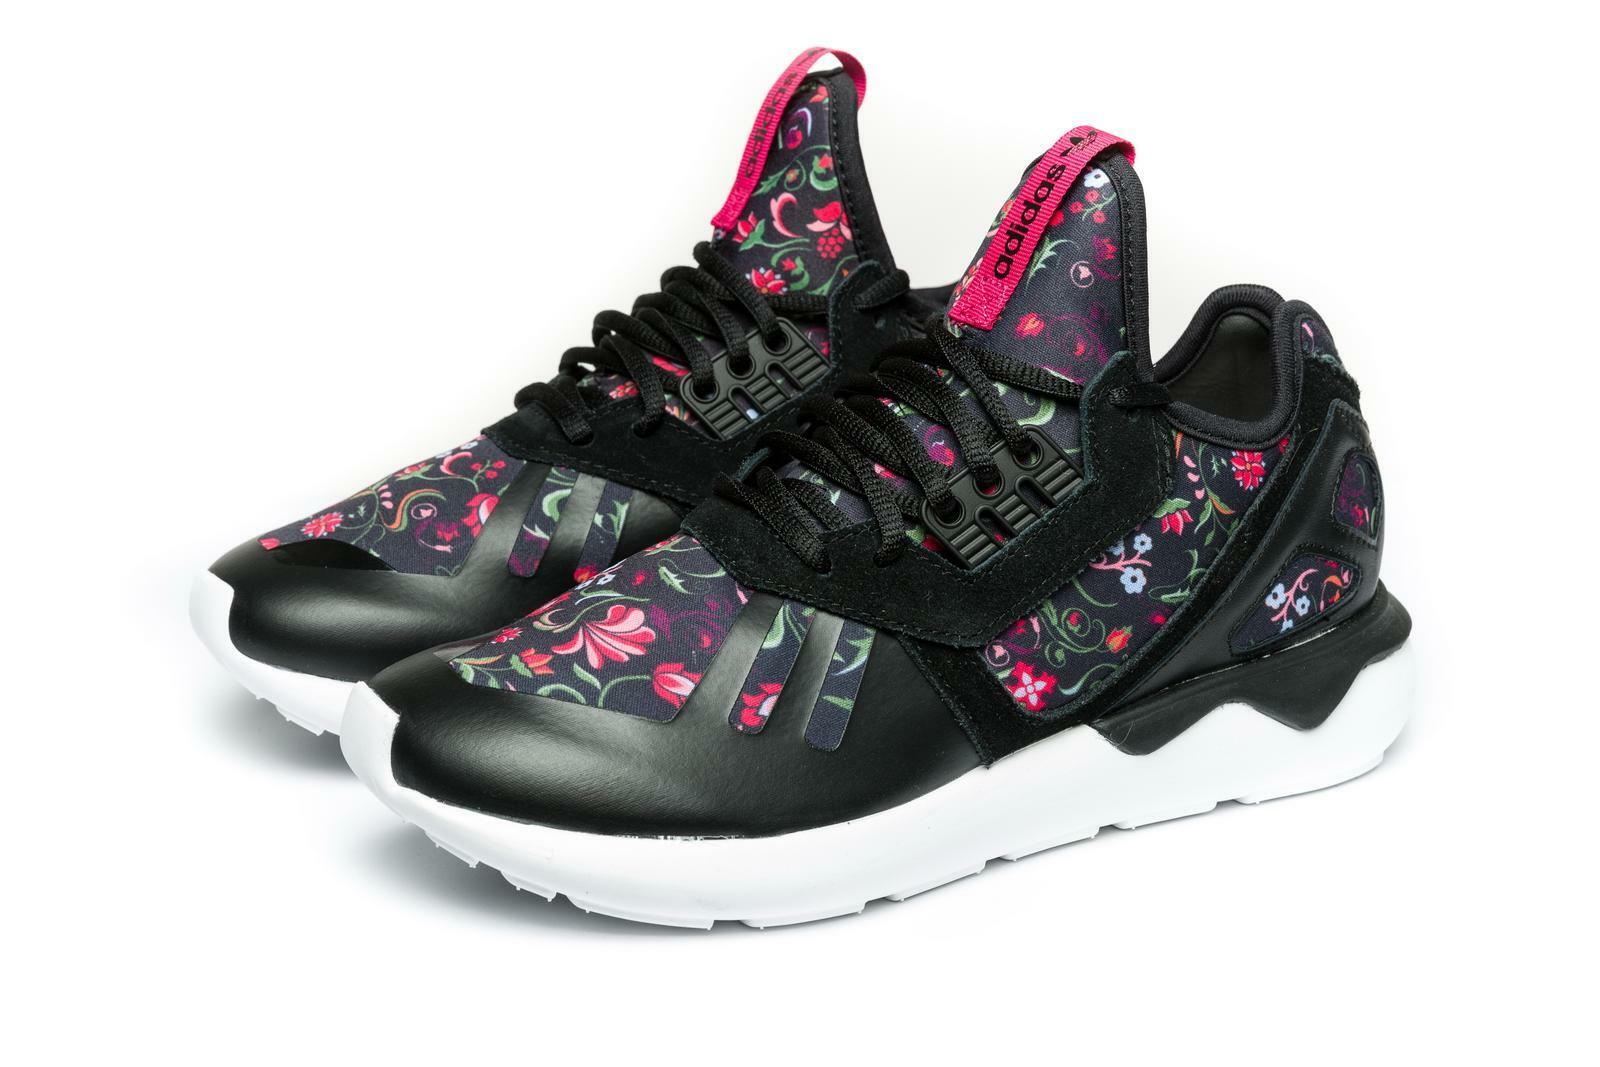 Adidas TUBULAR RUNNER AOP Moscow Floral Print honey shoes superstarWomen size 7